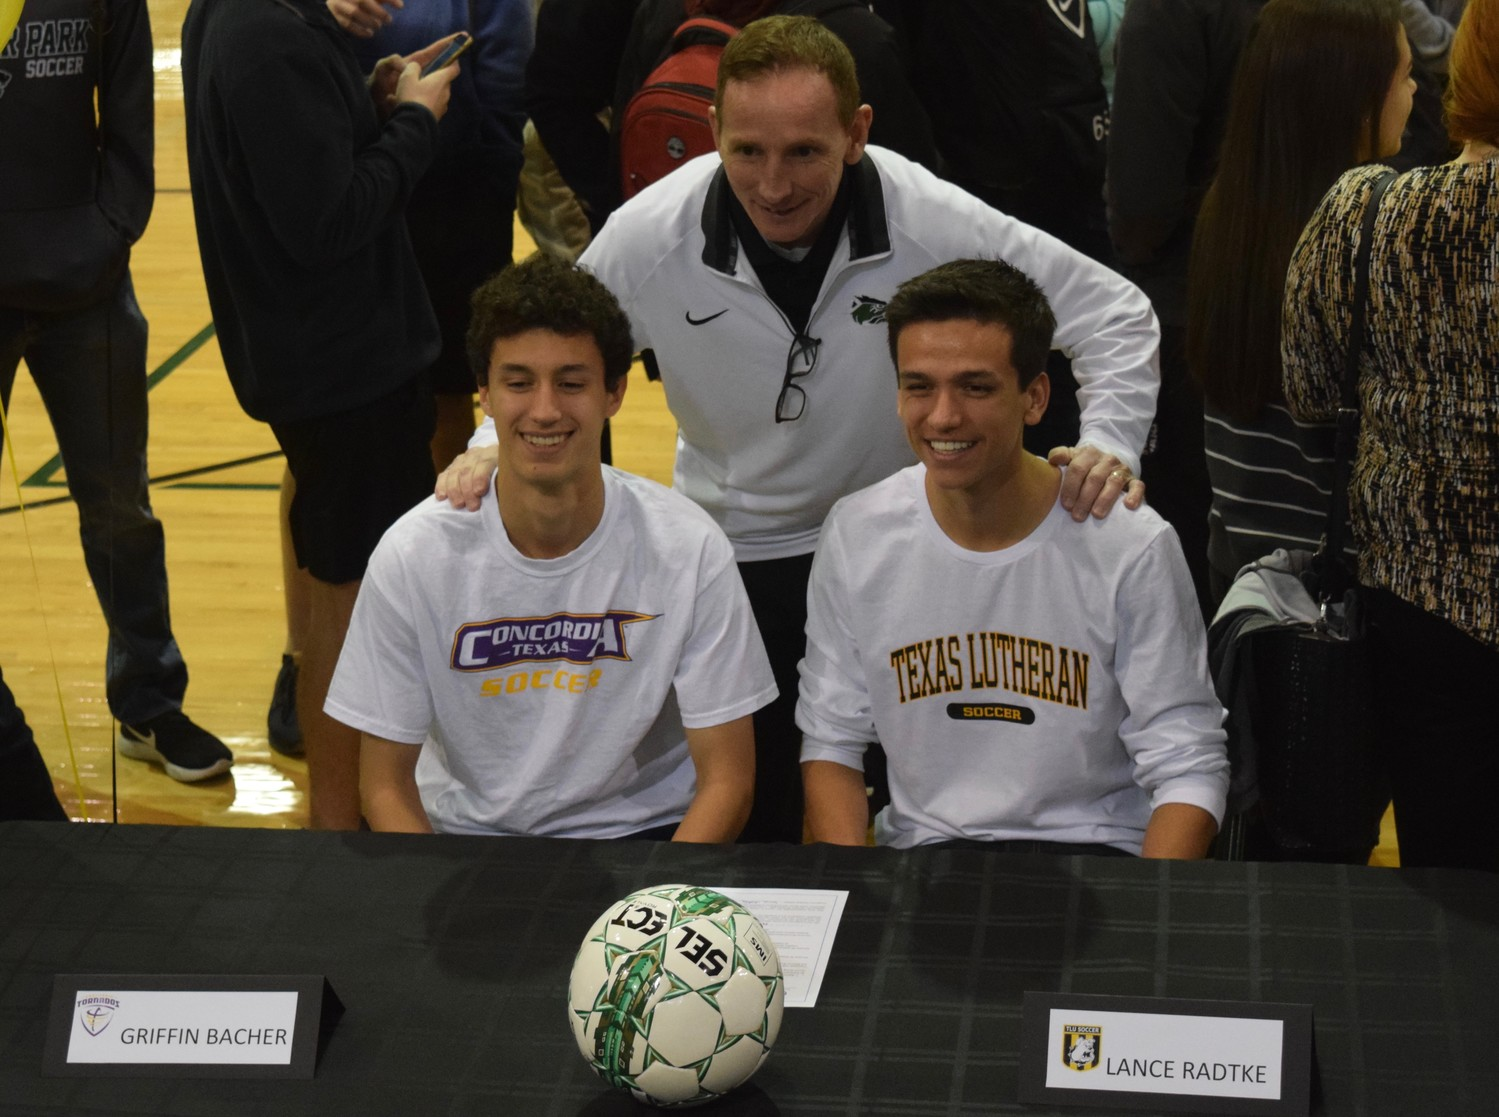 Soccer players Griffin Bacher (Concordia) and Lance Radtke (Texas Lutheran) with Cedar Park principle John Sloan at Signing Day on Wednesday morning.